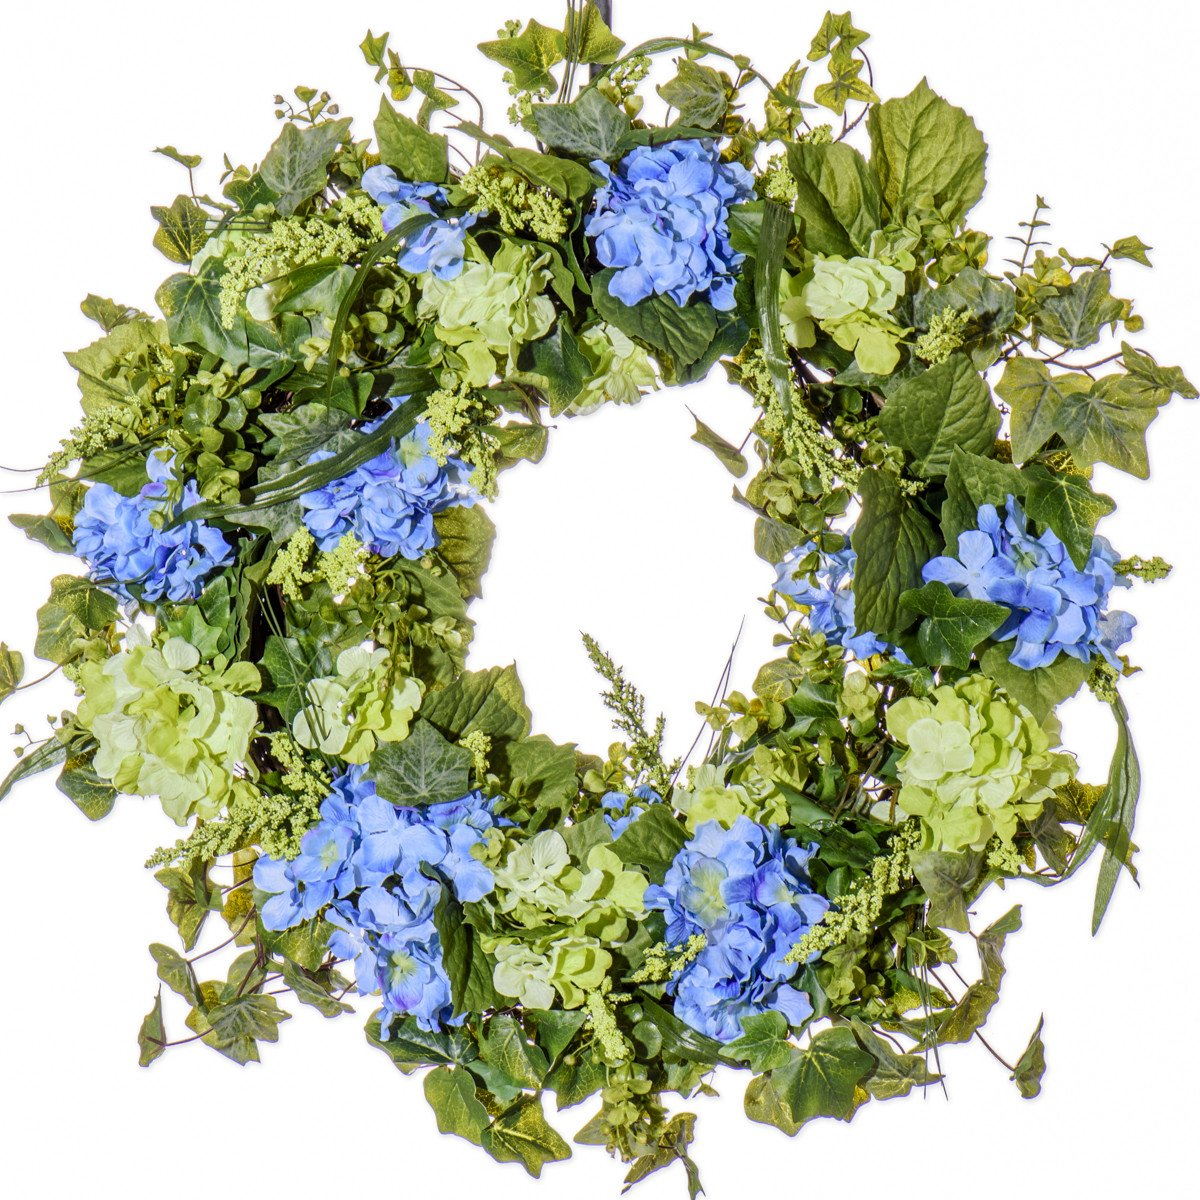 BLUE & GREEN HYDRANGEA WREATH (SW912) (26 inch)